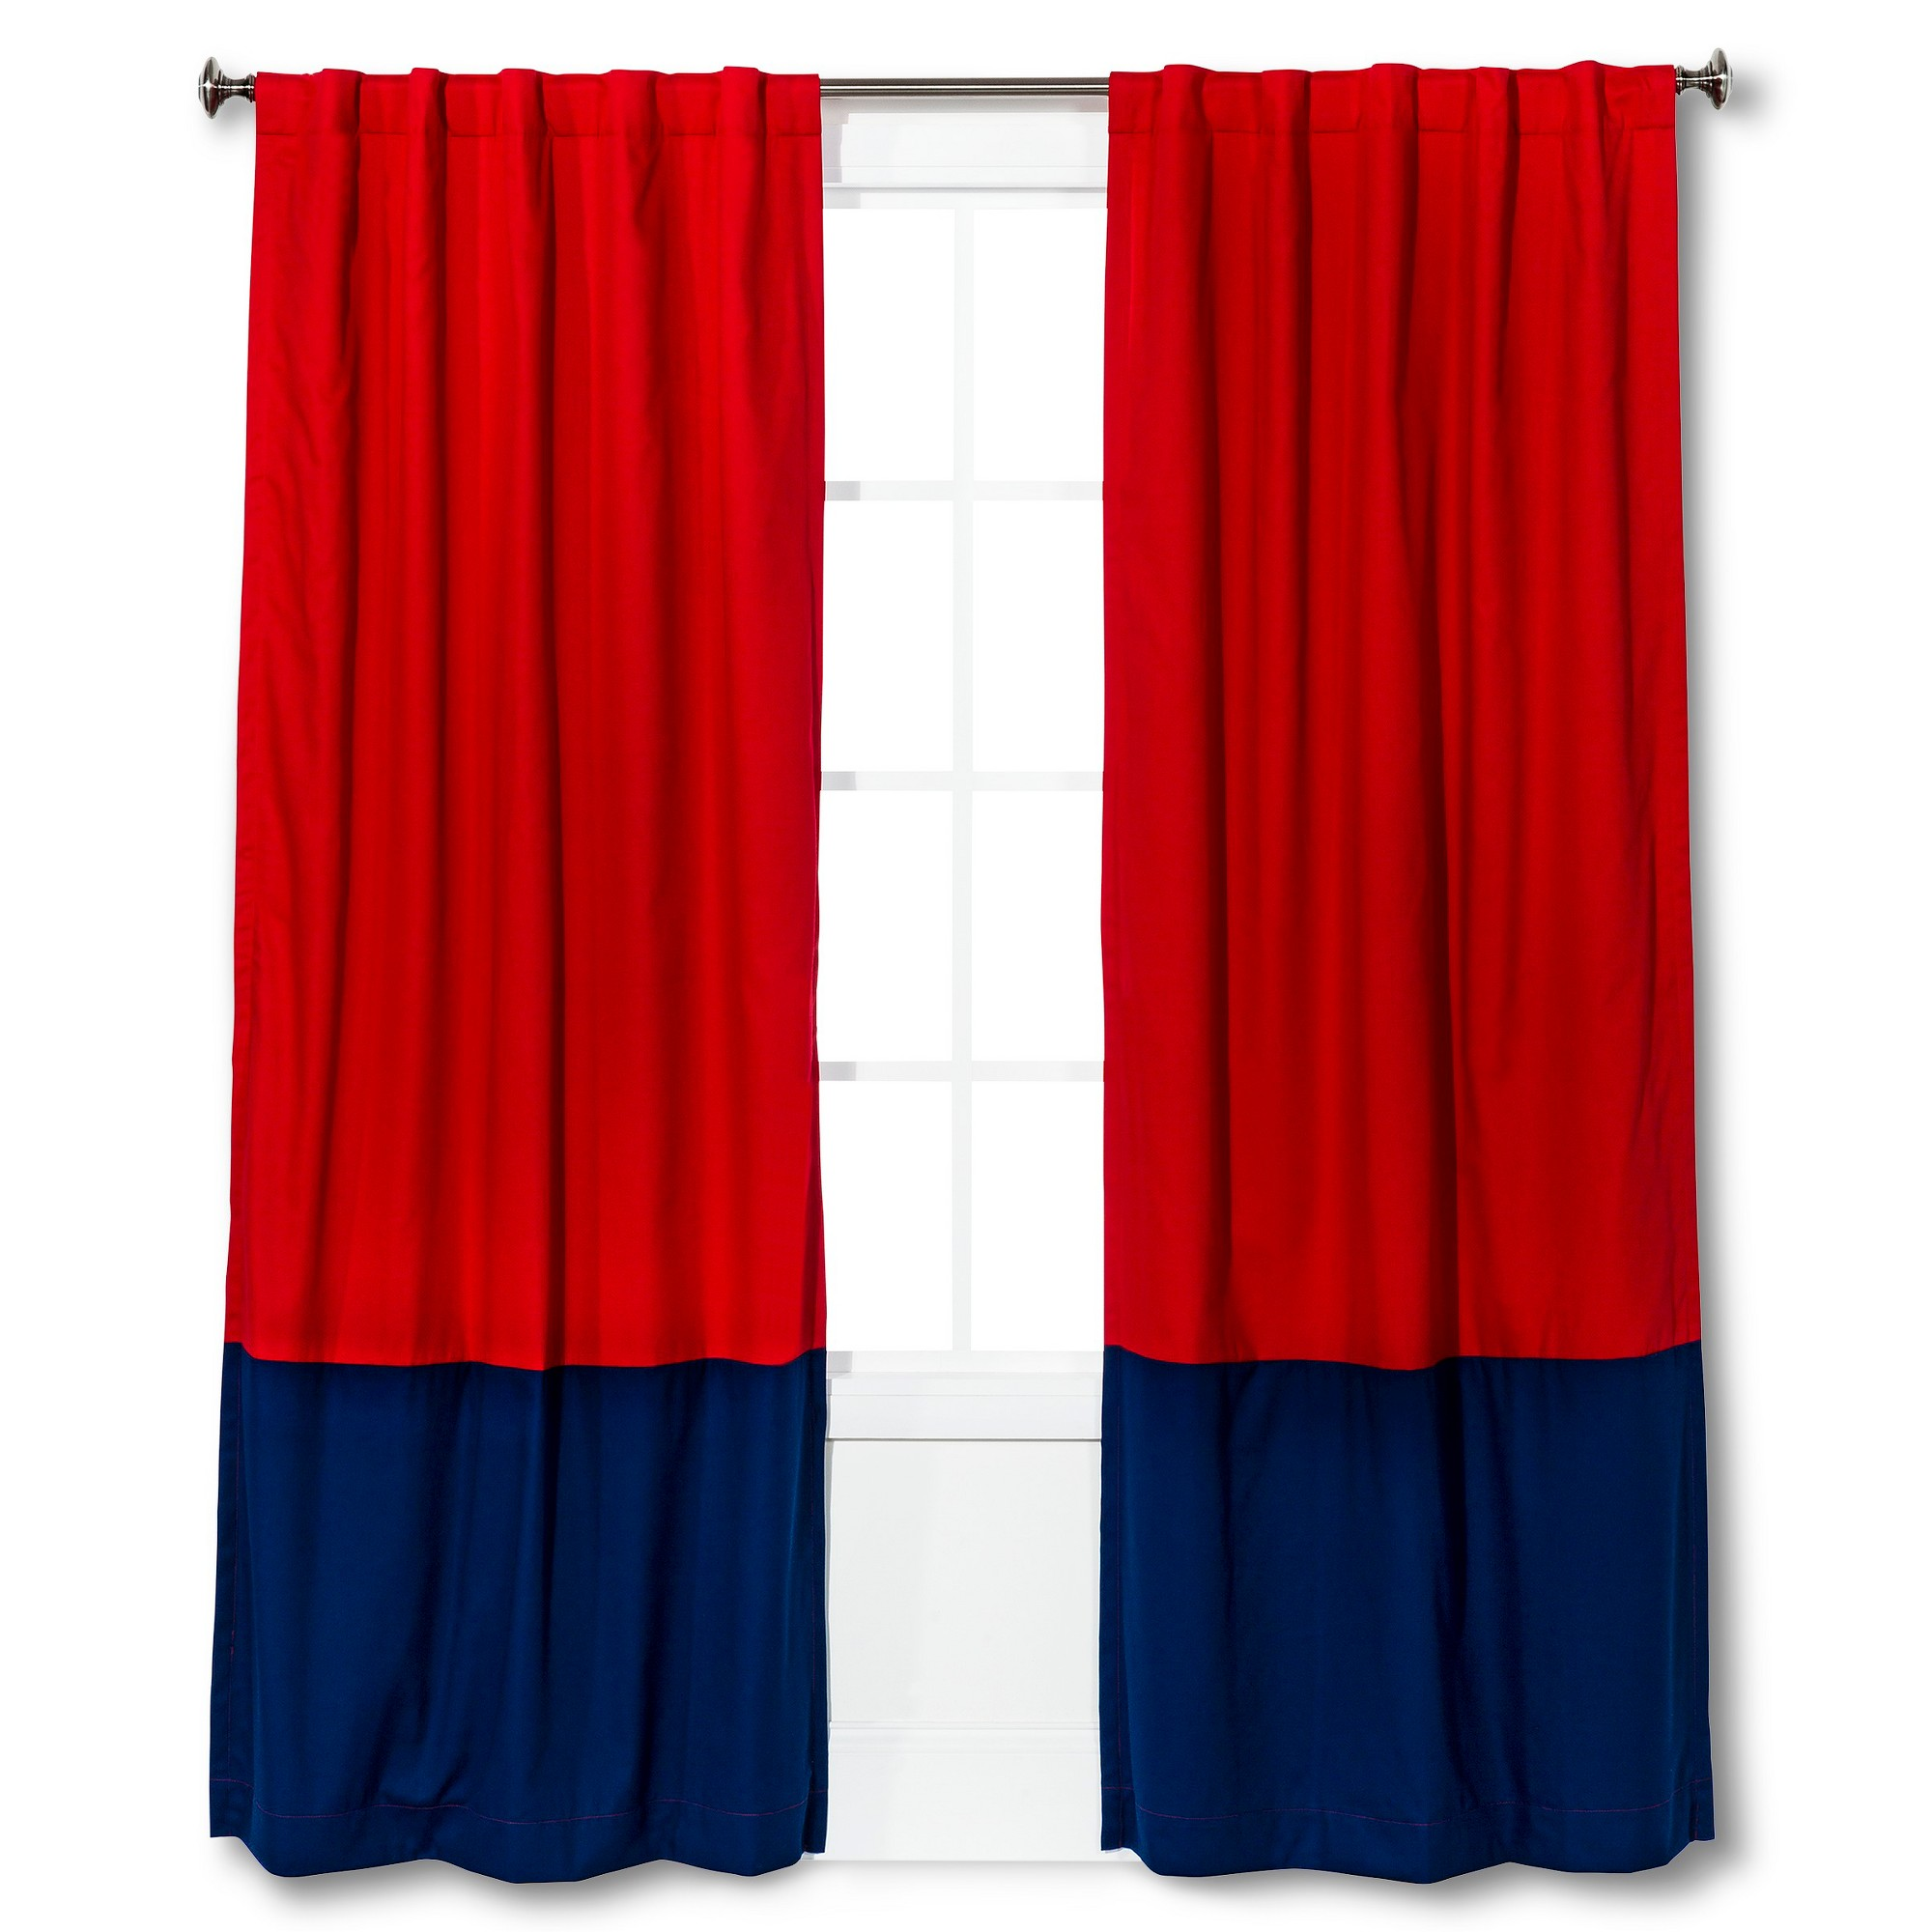 Twill Blackout Curtain Panel Red Navy Colorblock 42 X84